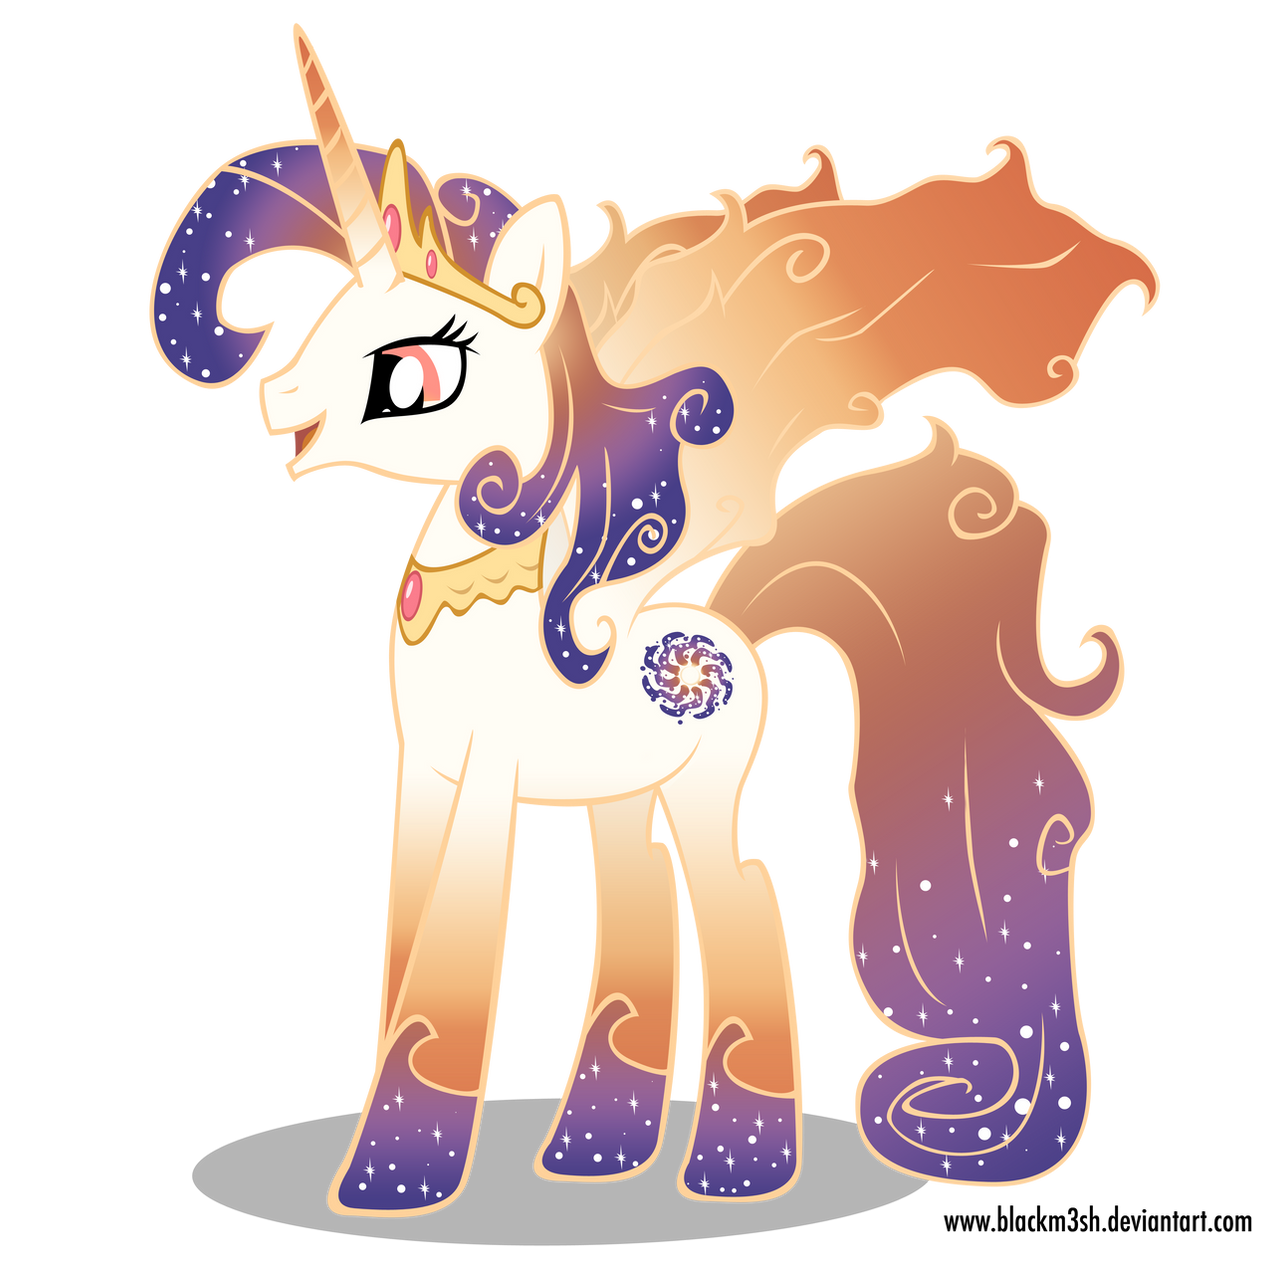 Luna and Celestia's Mother by Blackm3sh on DeviantArt